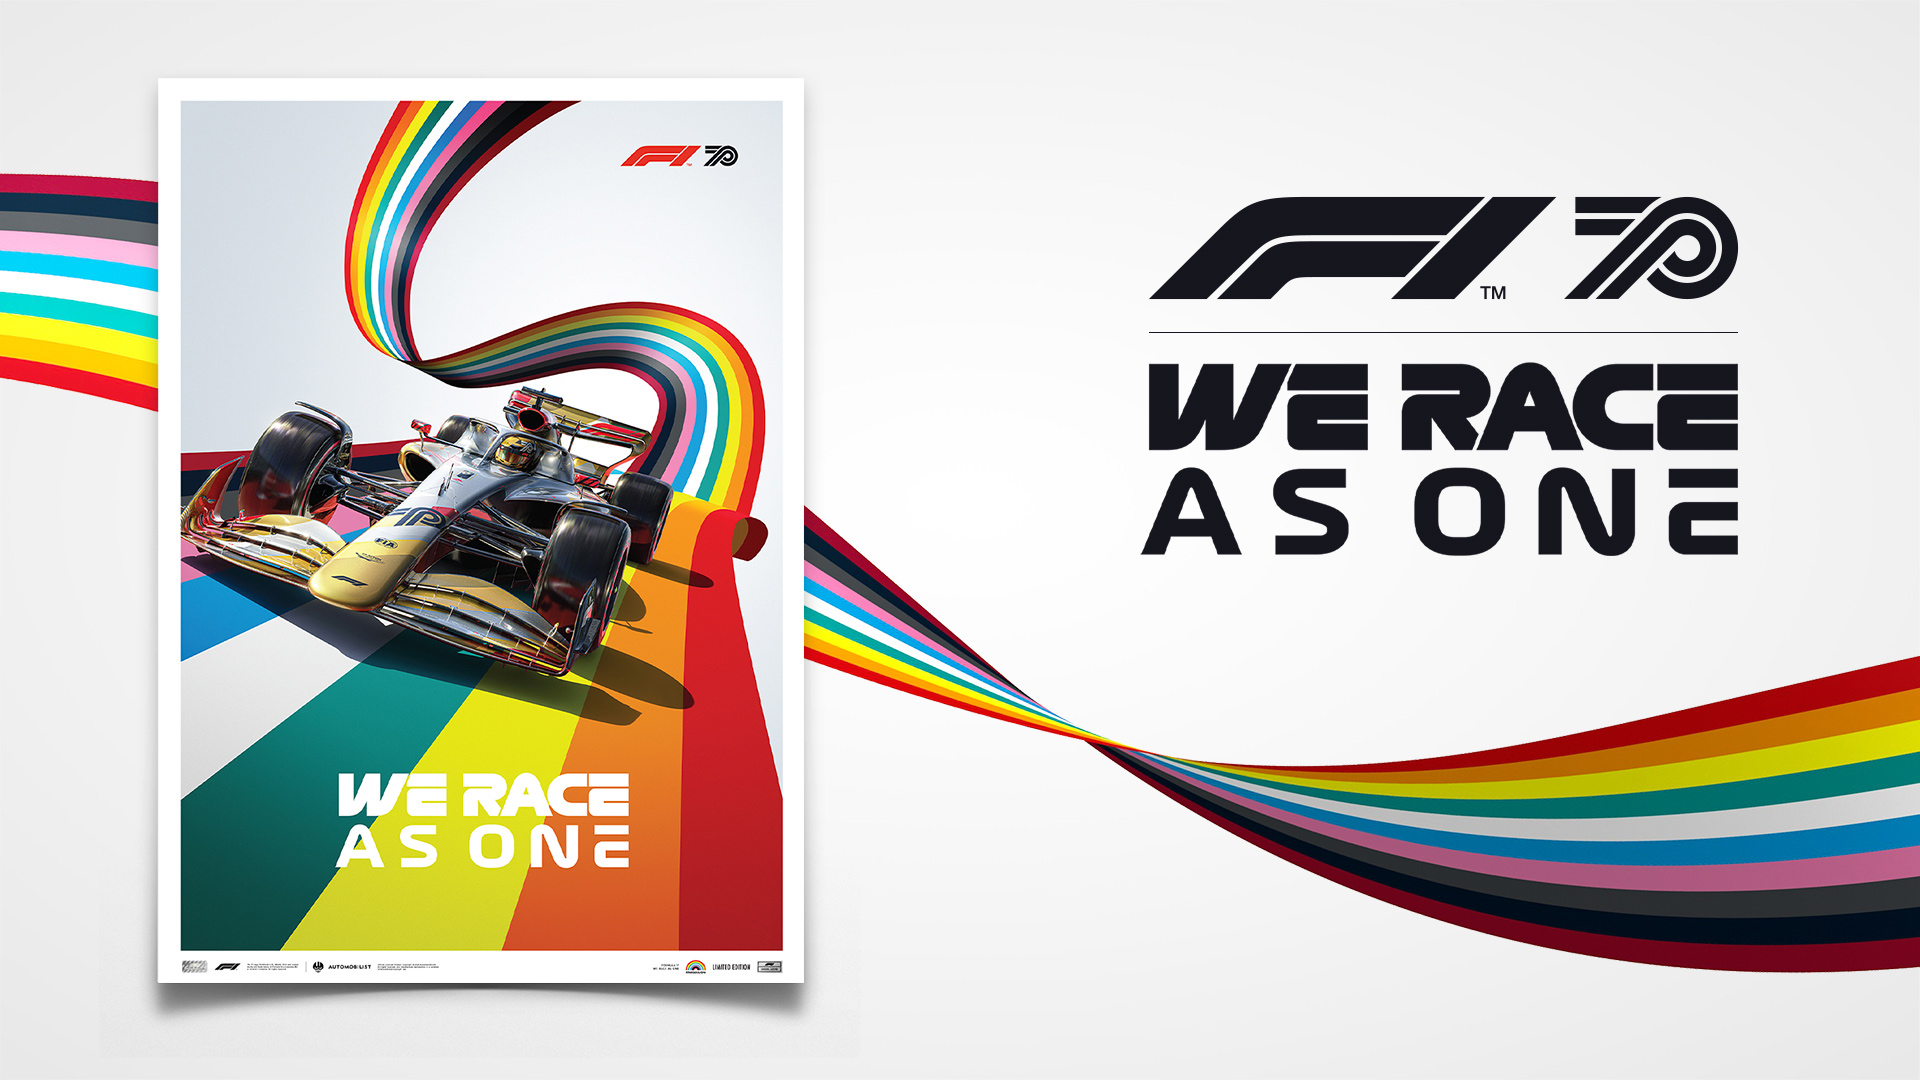 Get Your Hands On A Brand New F1 Weraceasone Poster With All Proceeds Going To Charity Formula 1